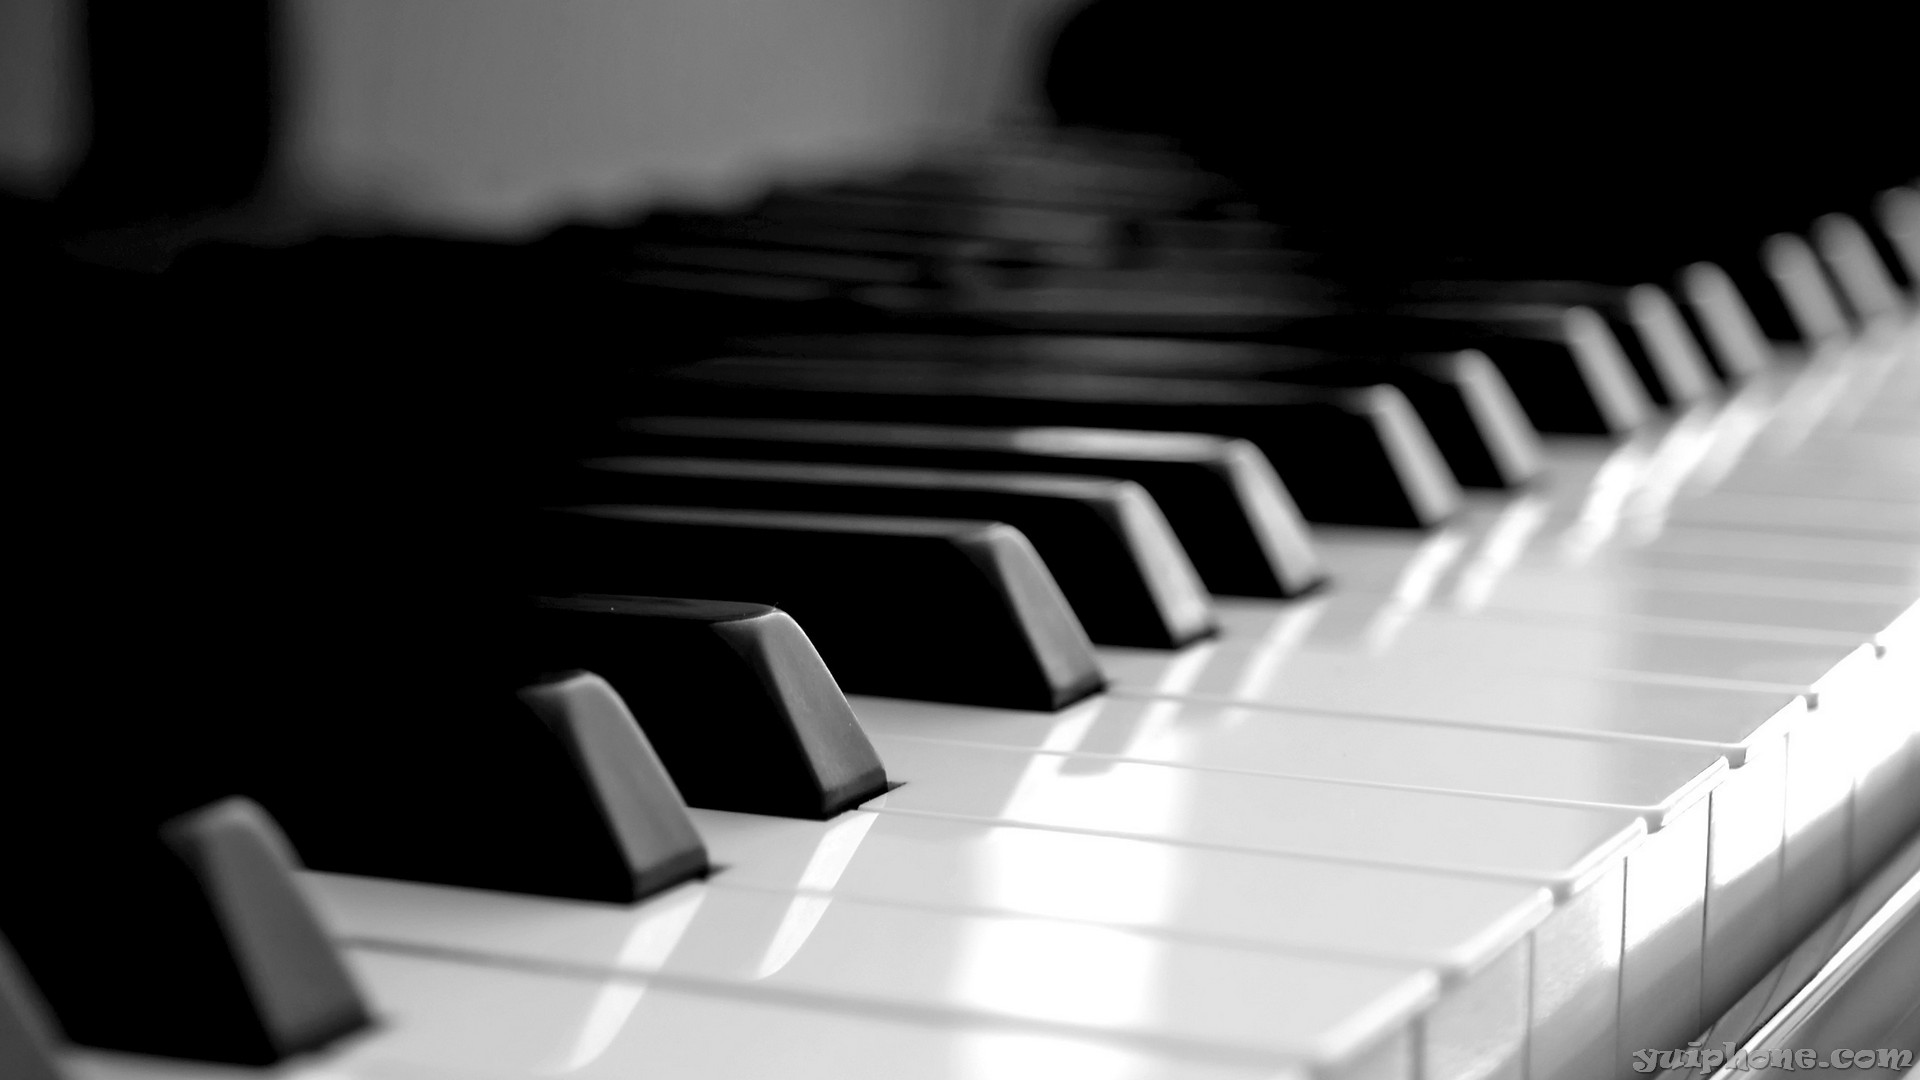 piano-keyboard-wallpaper-yuiphone